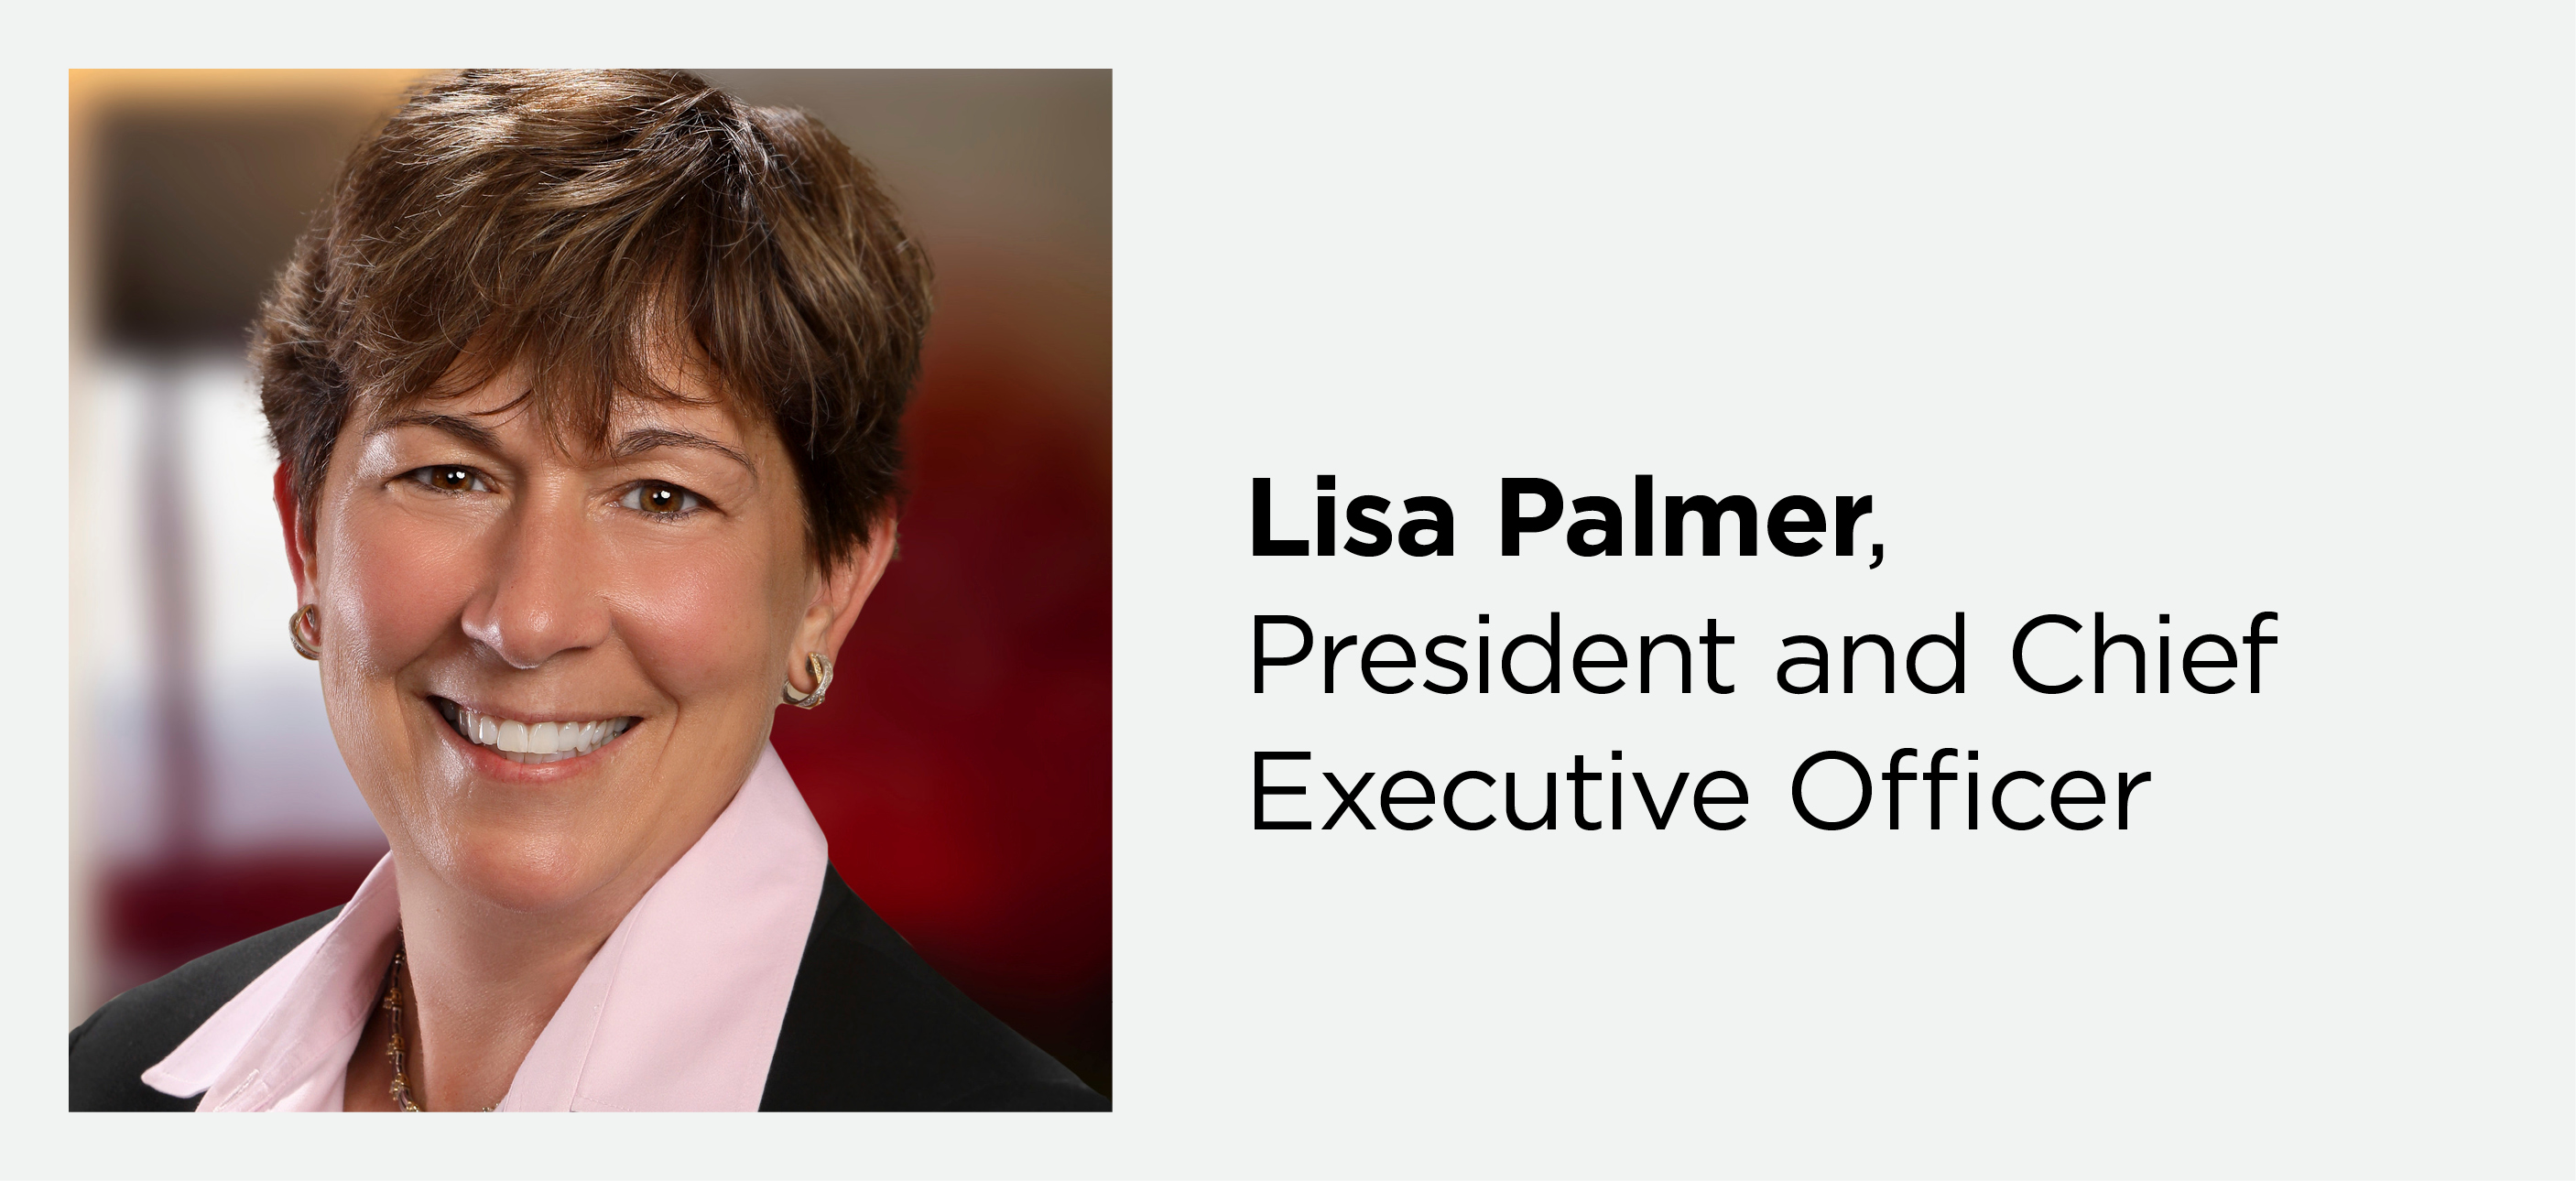 Portrait of Lisa Palmer, President and Chief Executive Officer